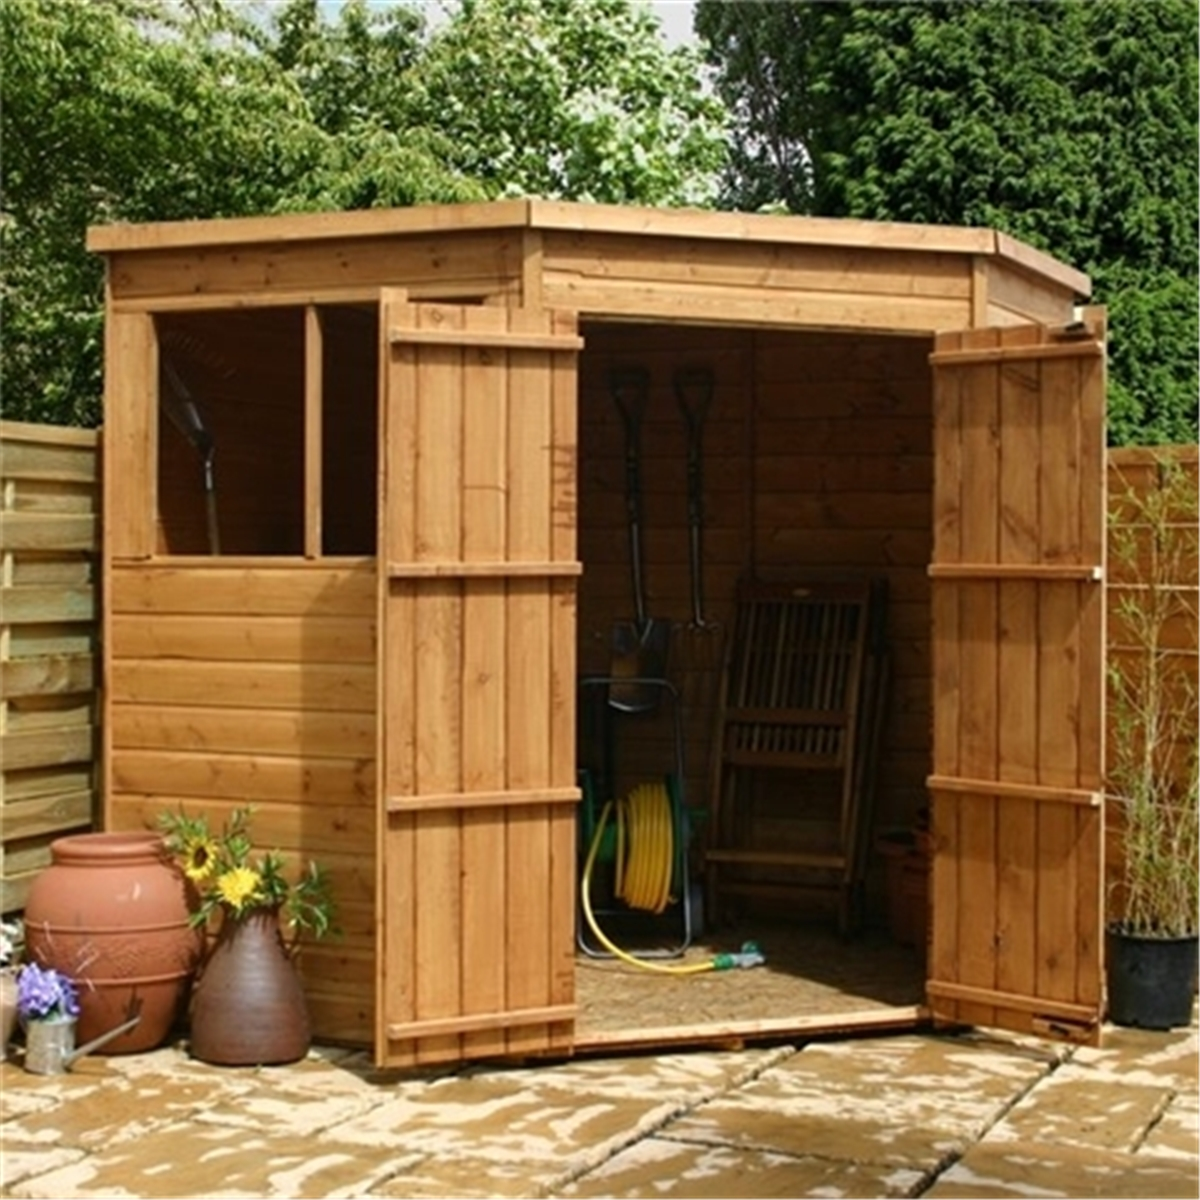 product detail more info 7 x 7 tongue and groove corner shed with double doors 2 windows 10mm